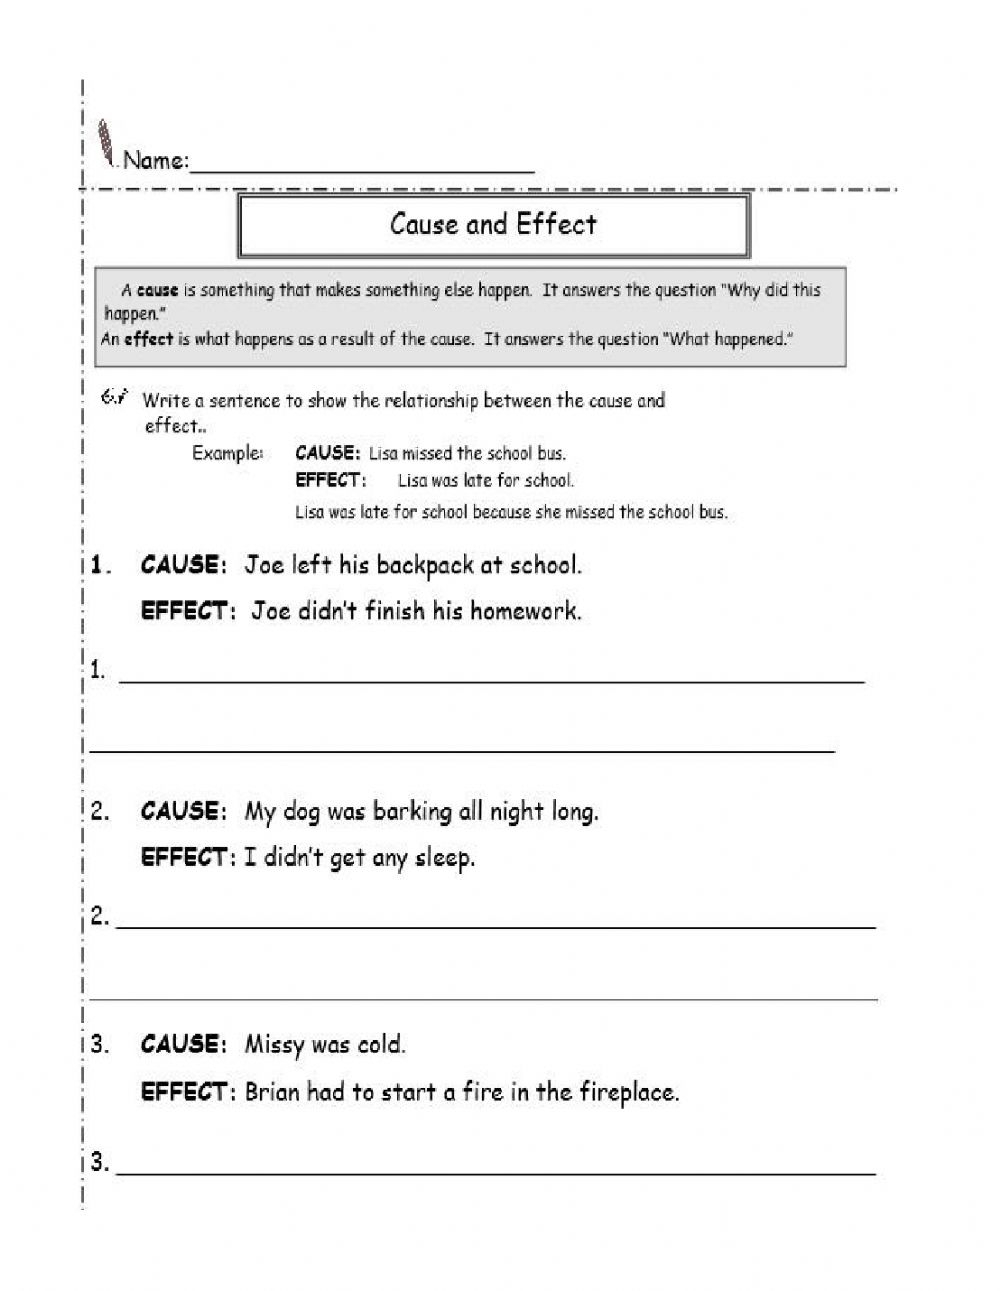 Cause And Effect 2 Interactive Worksheet